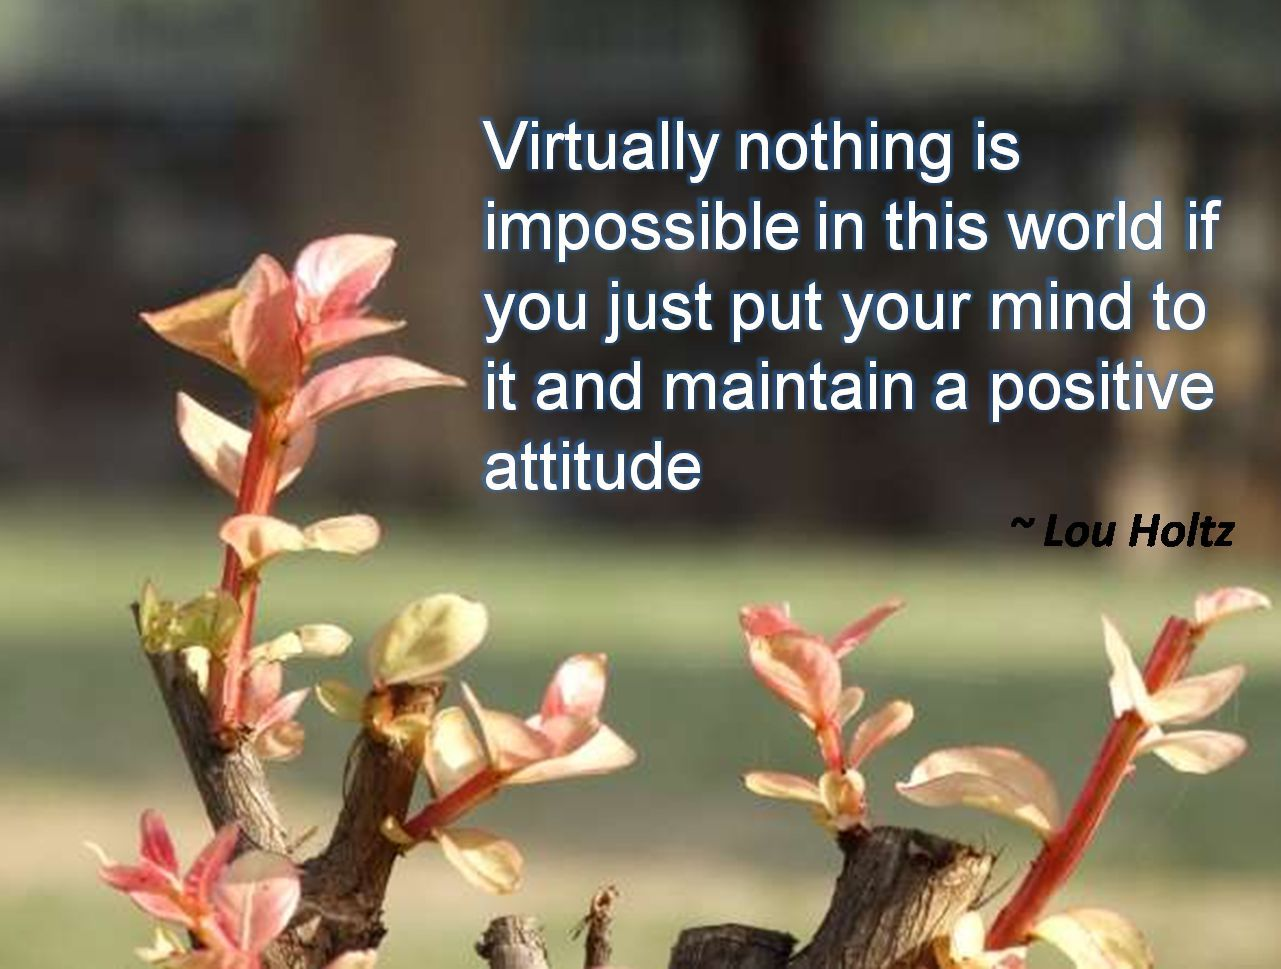 Lou Holtz- Virtually nothing is impossible in this world if you just put your mind to it and maintain a positive attitude